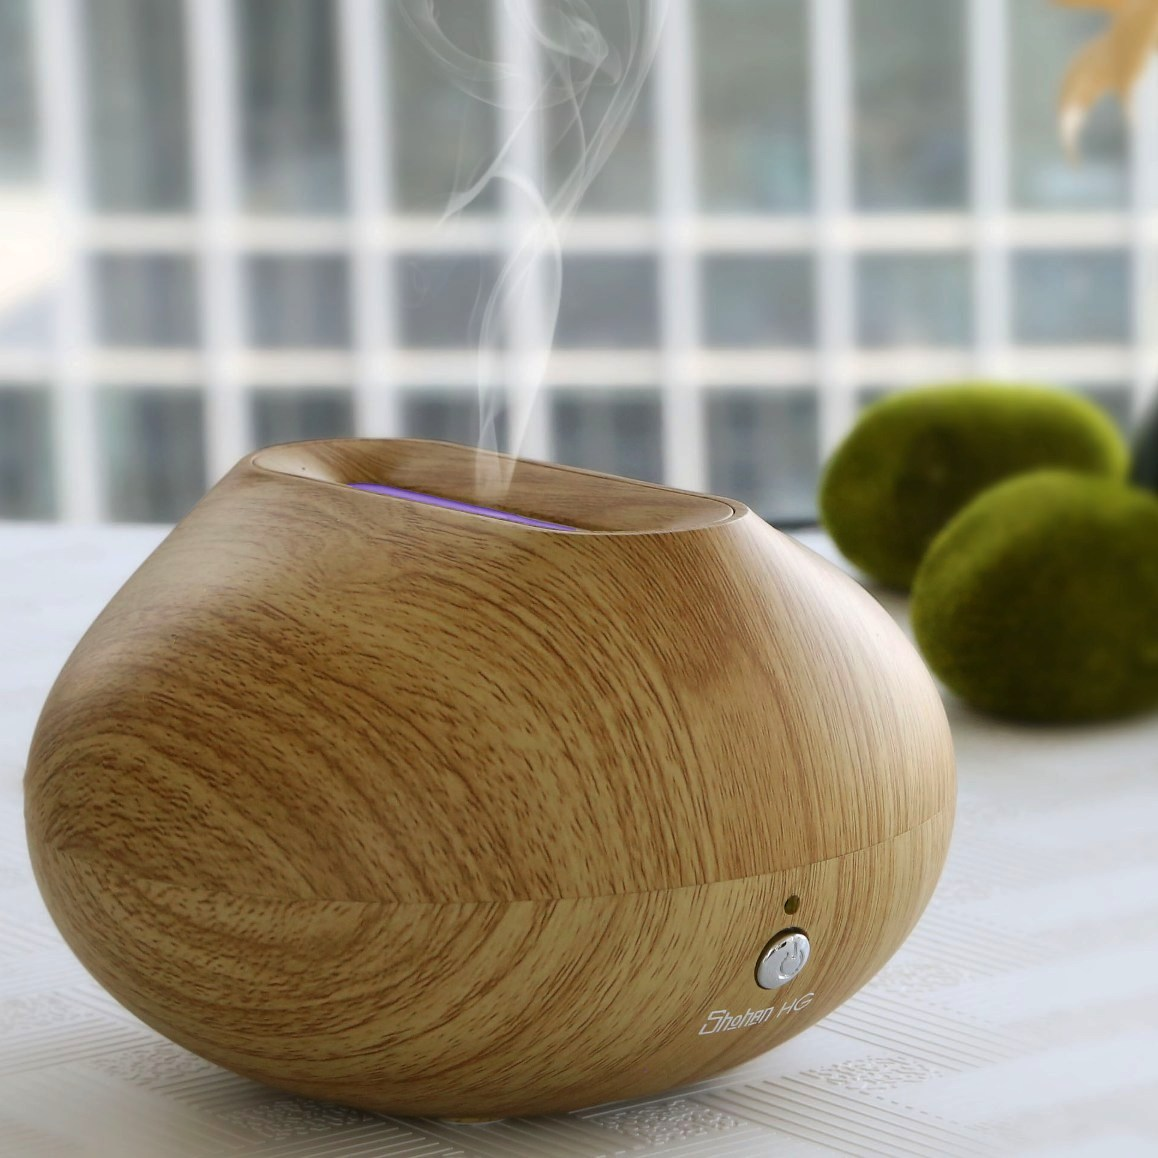 Shohan HG Essential Oil Aroma Diffuser and Humidifier a